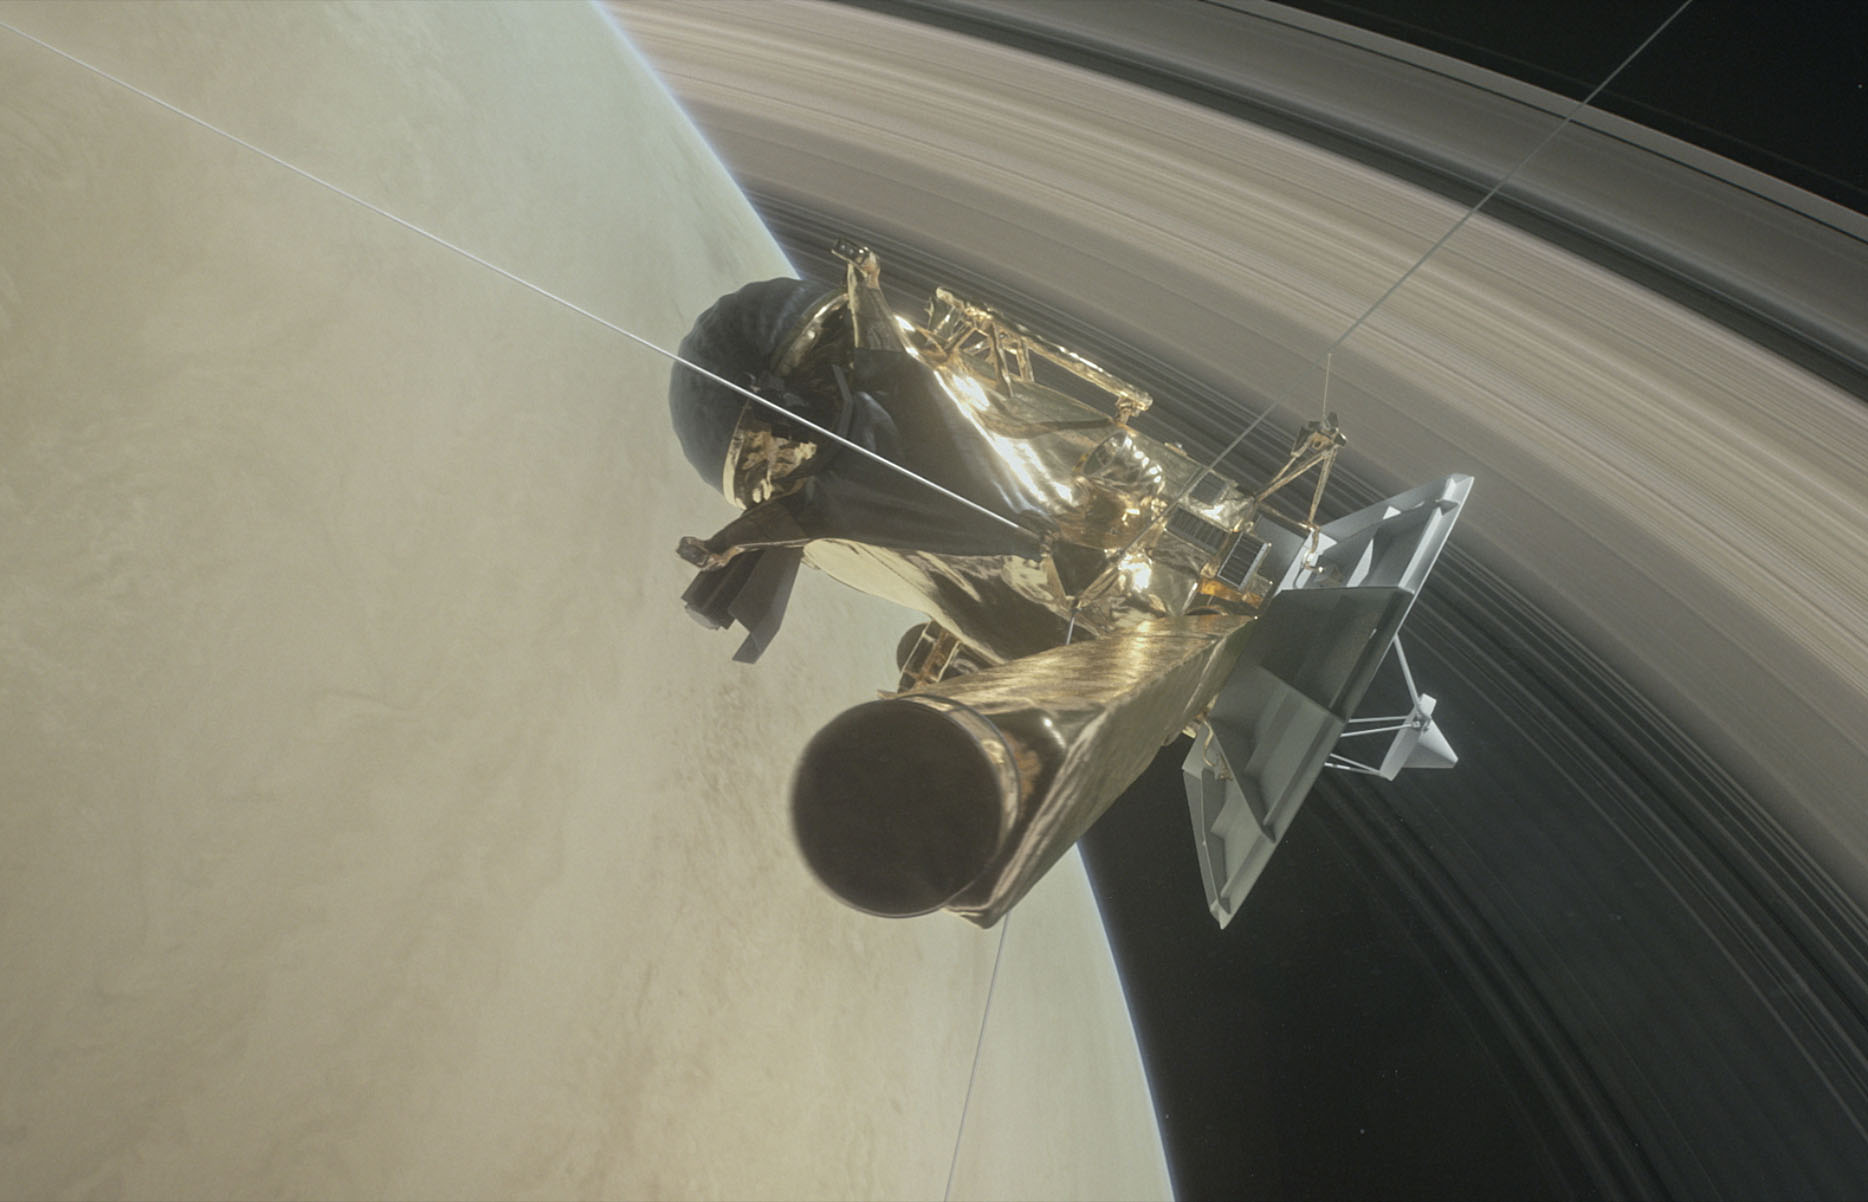 The mission of Cassini-Huygens is over